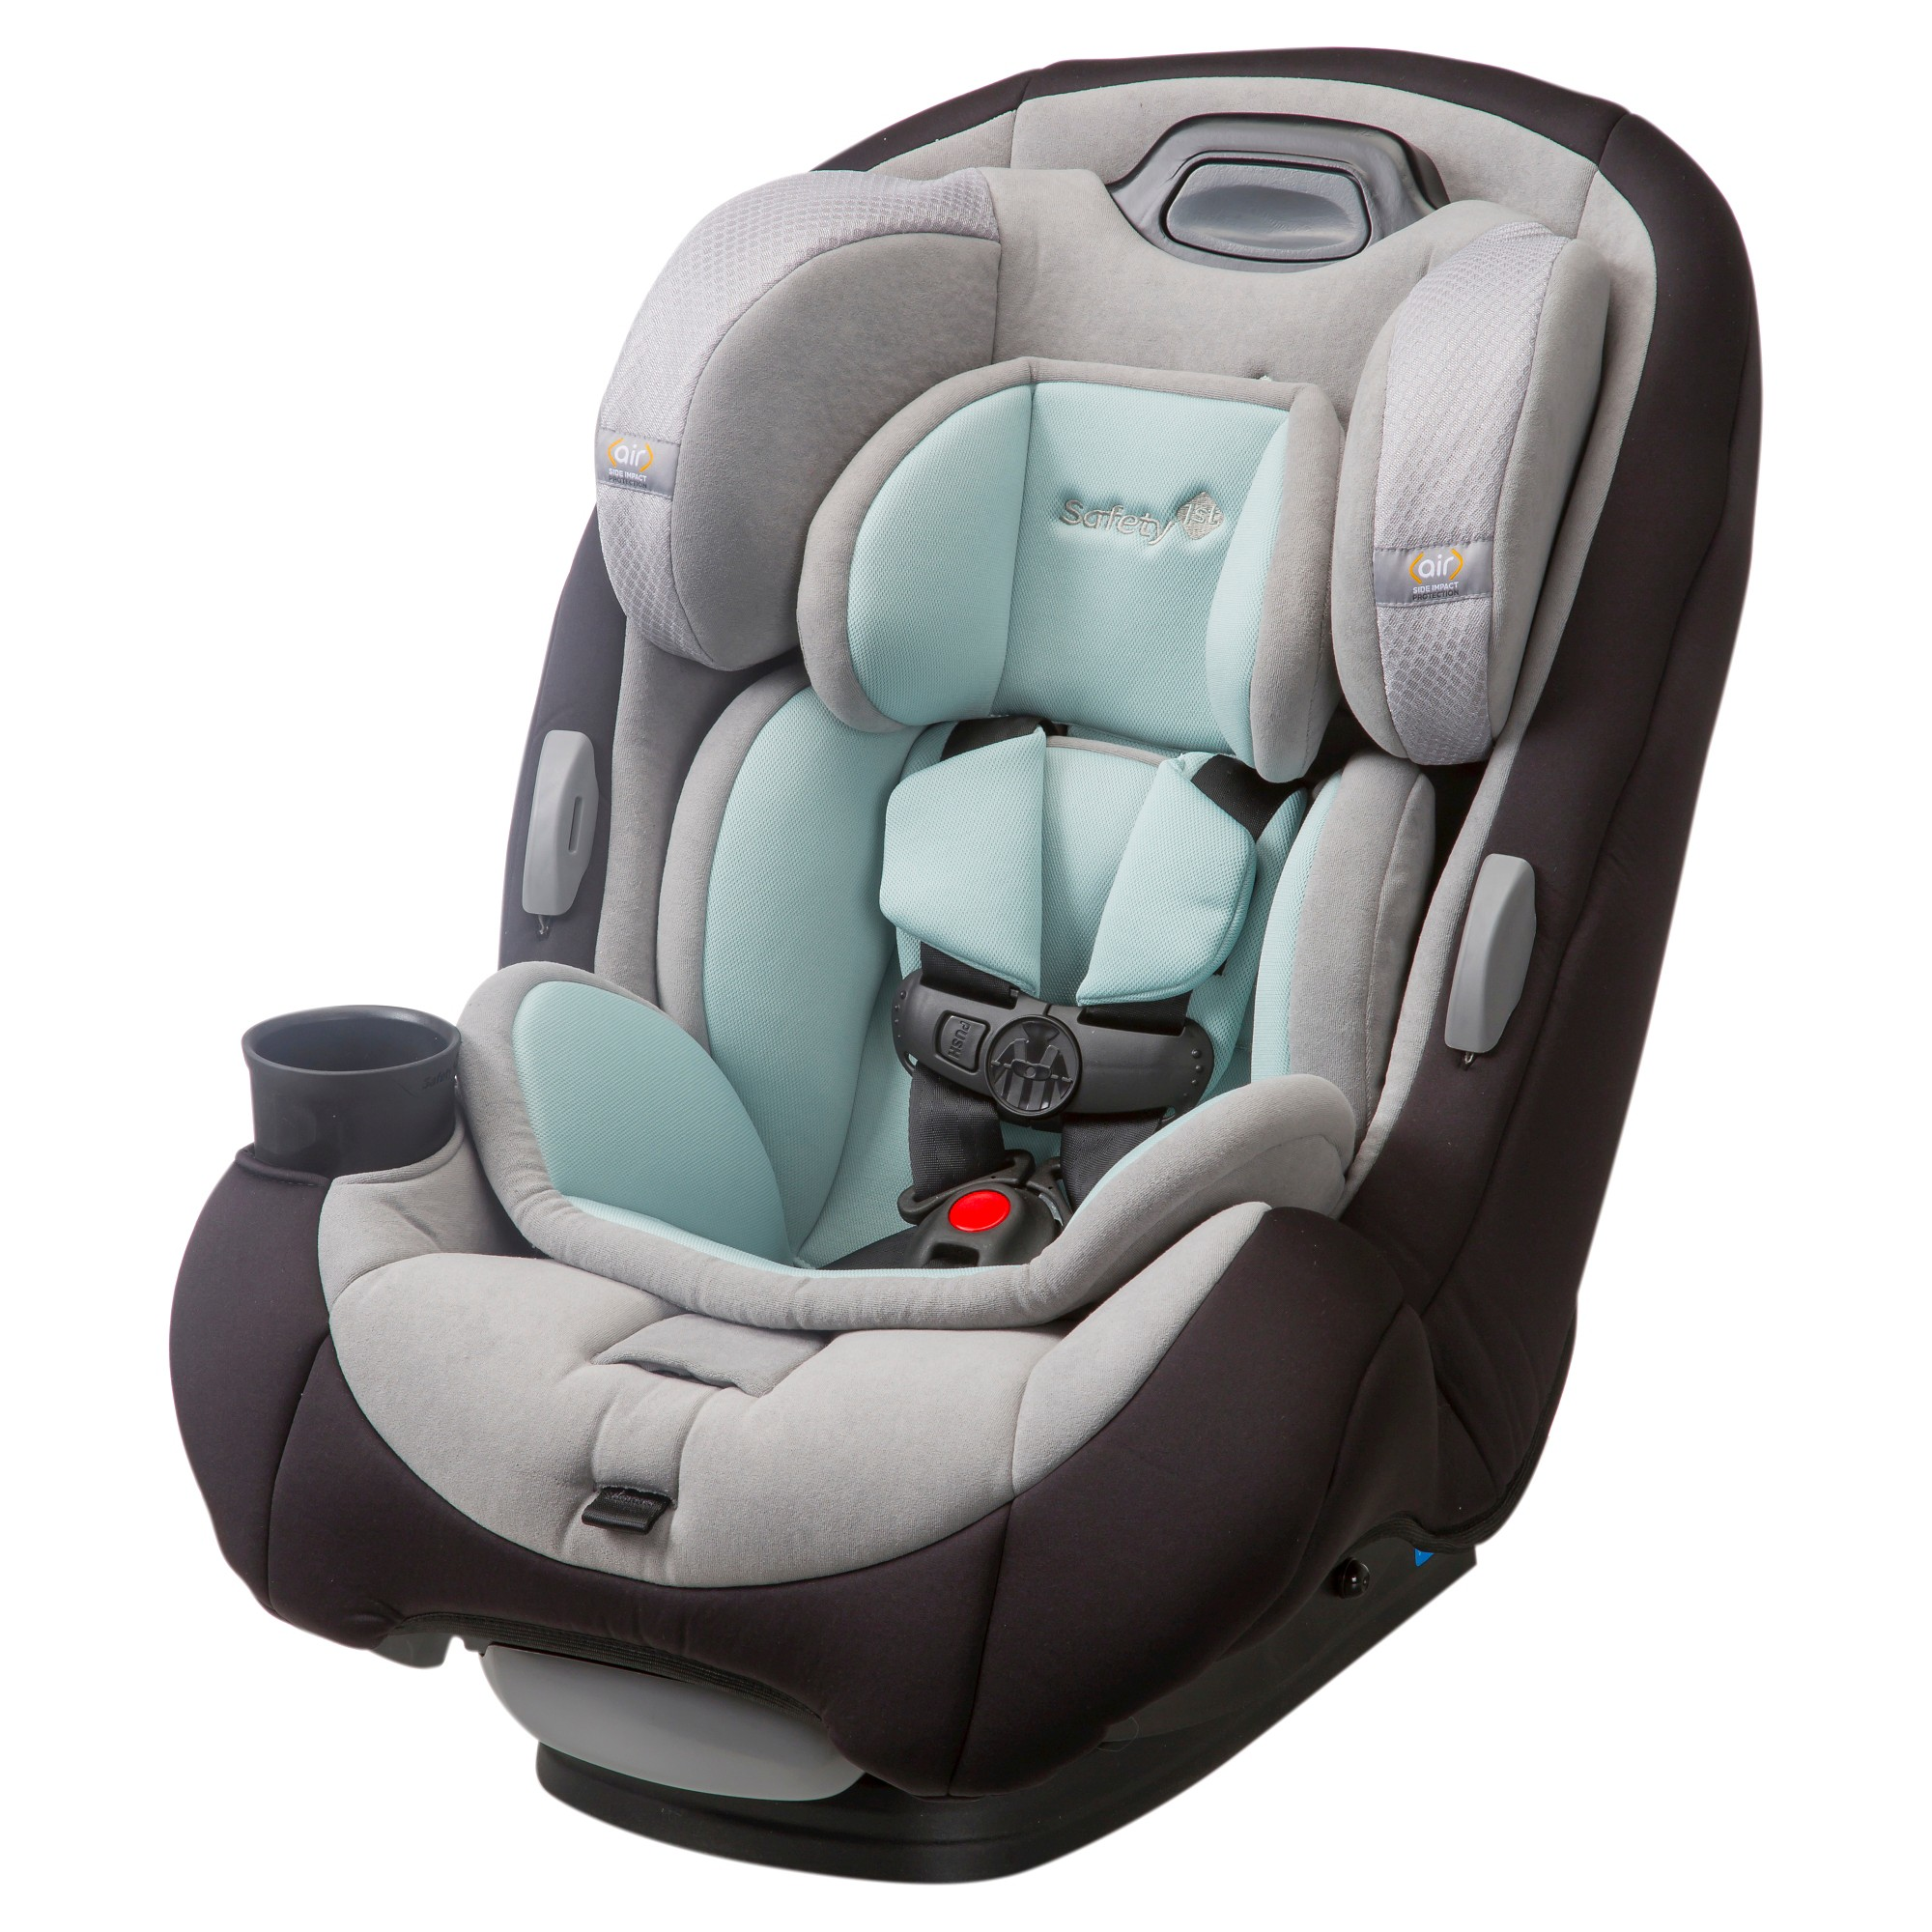 Safety 1st Grow & Go Sport Air 3in1 Convertible Car Seat